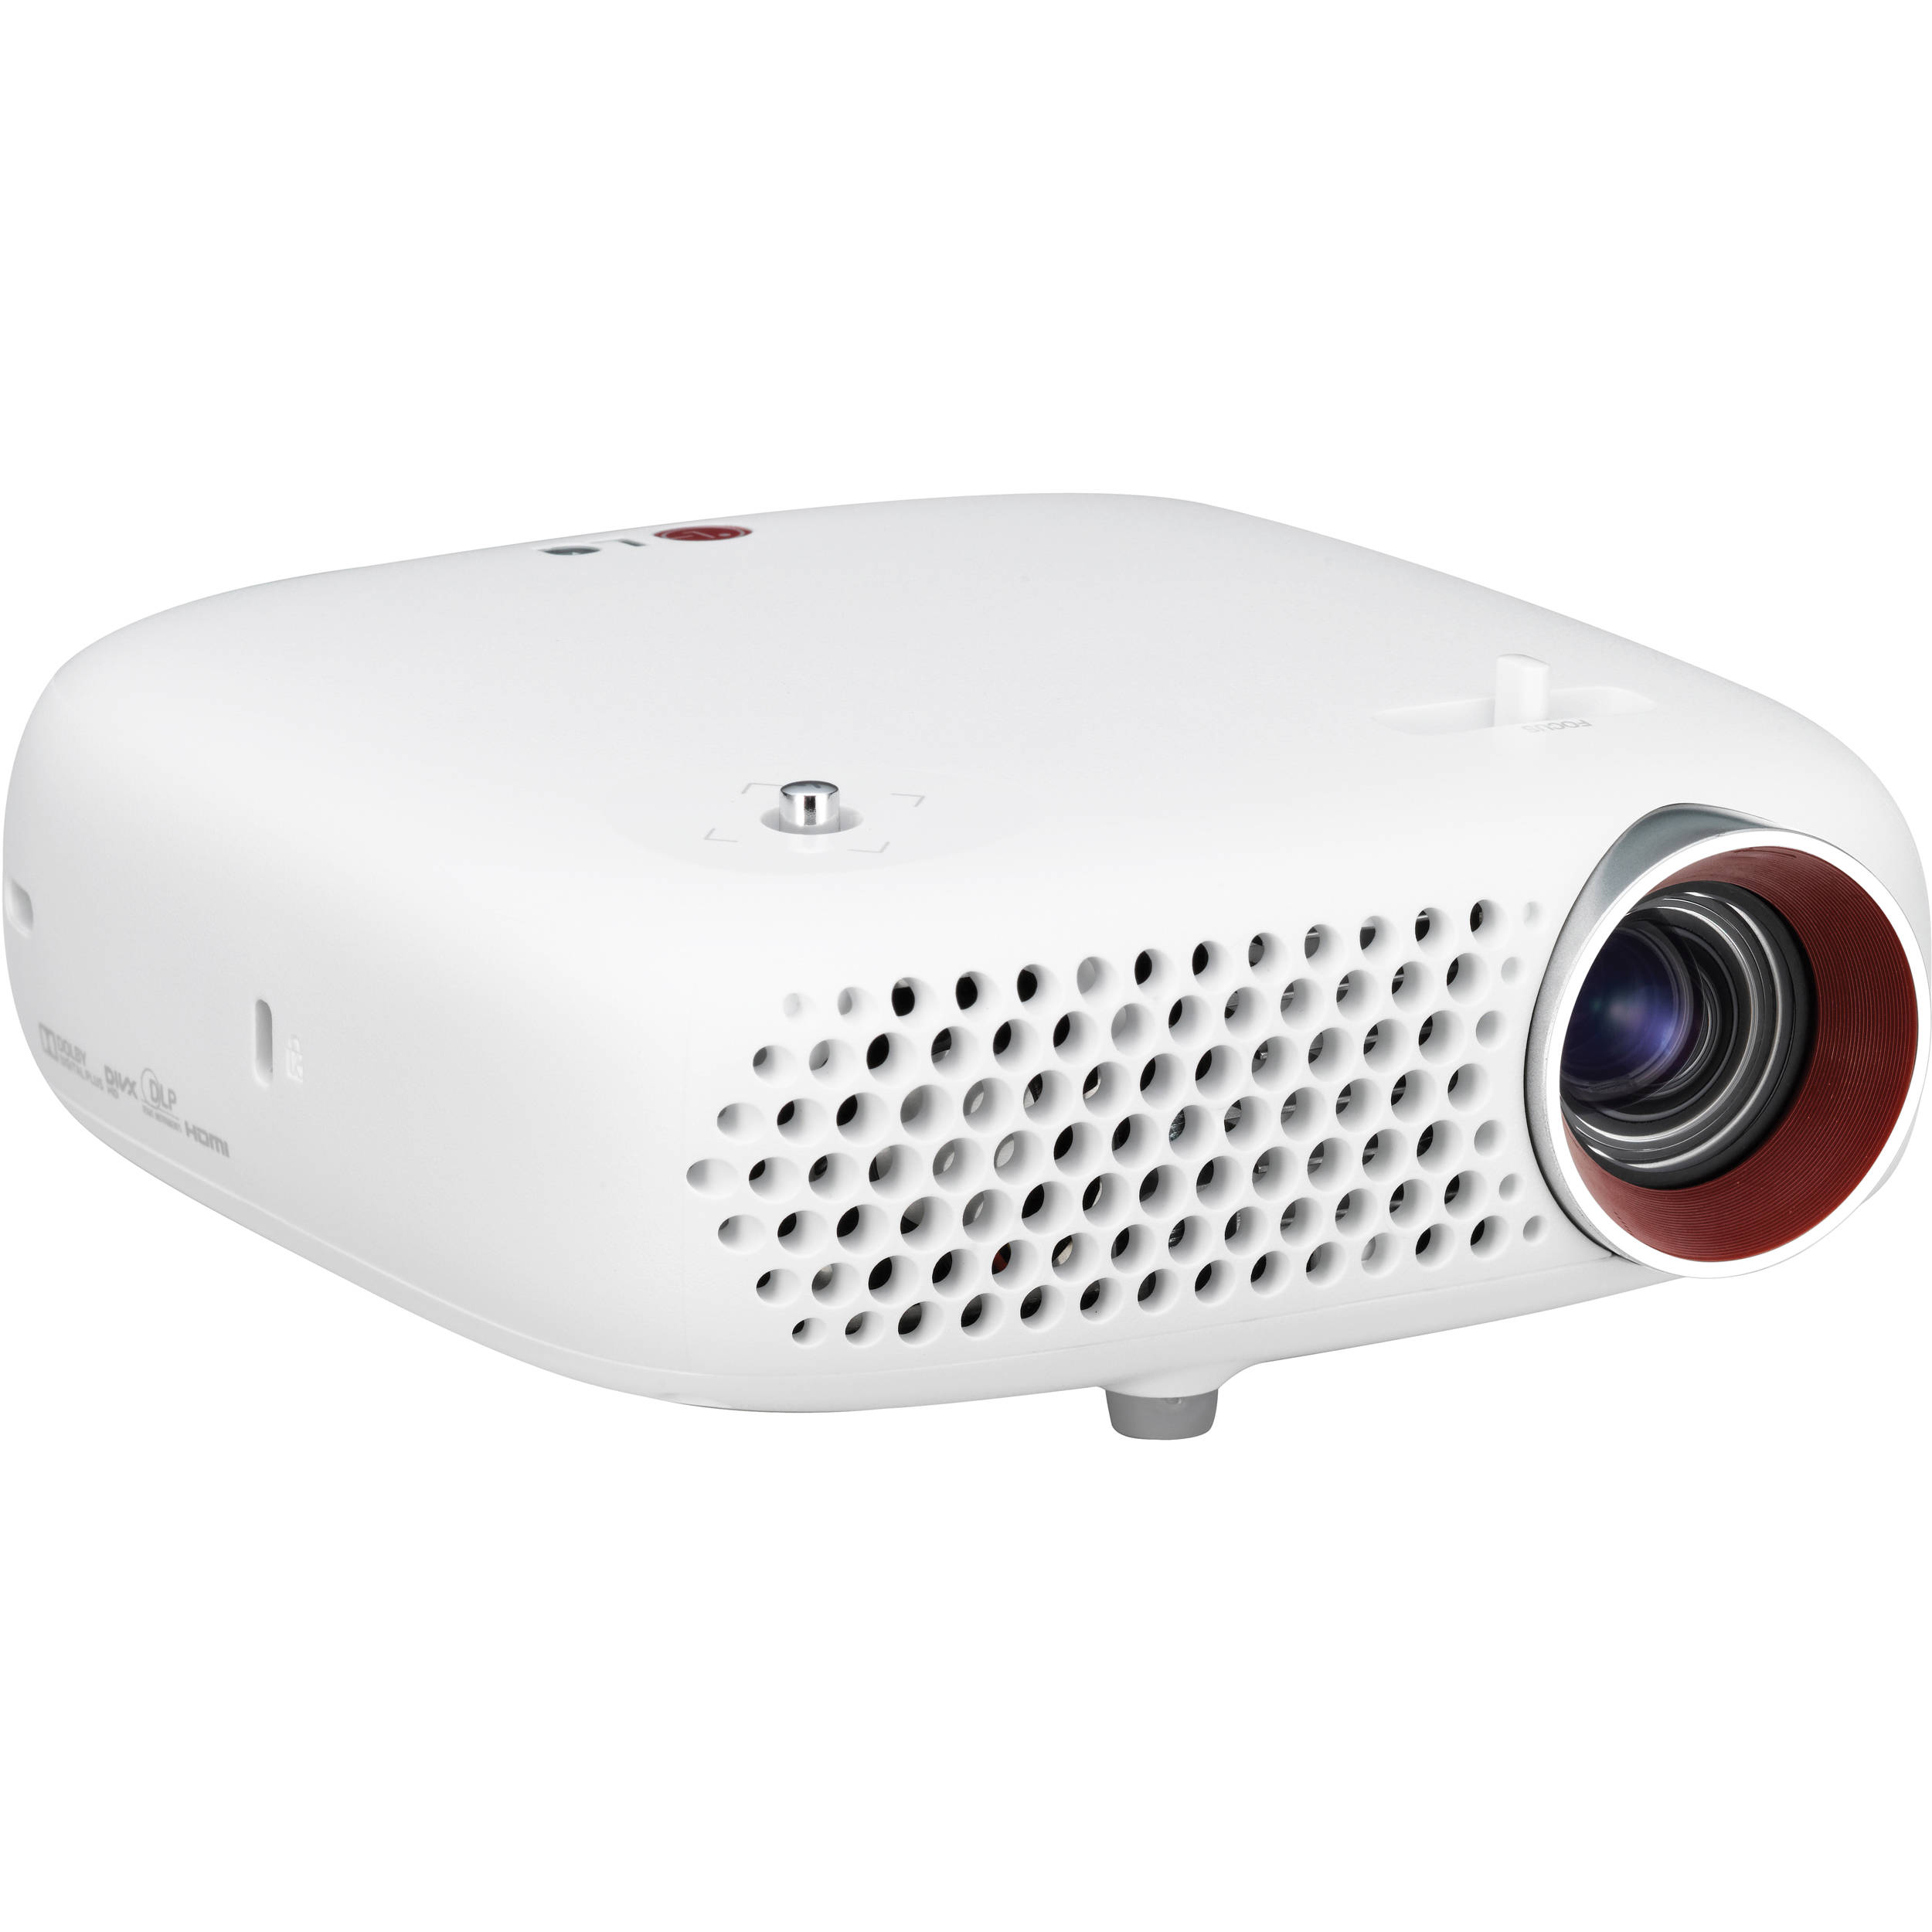 Lg pw600g portable hd led projector pw600g b h photo video for Hd mobile projector